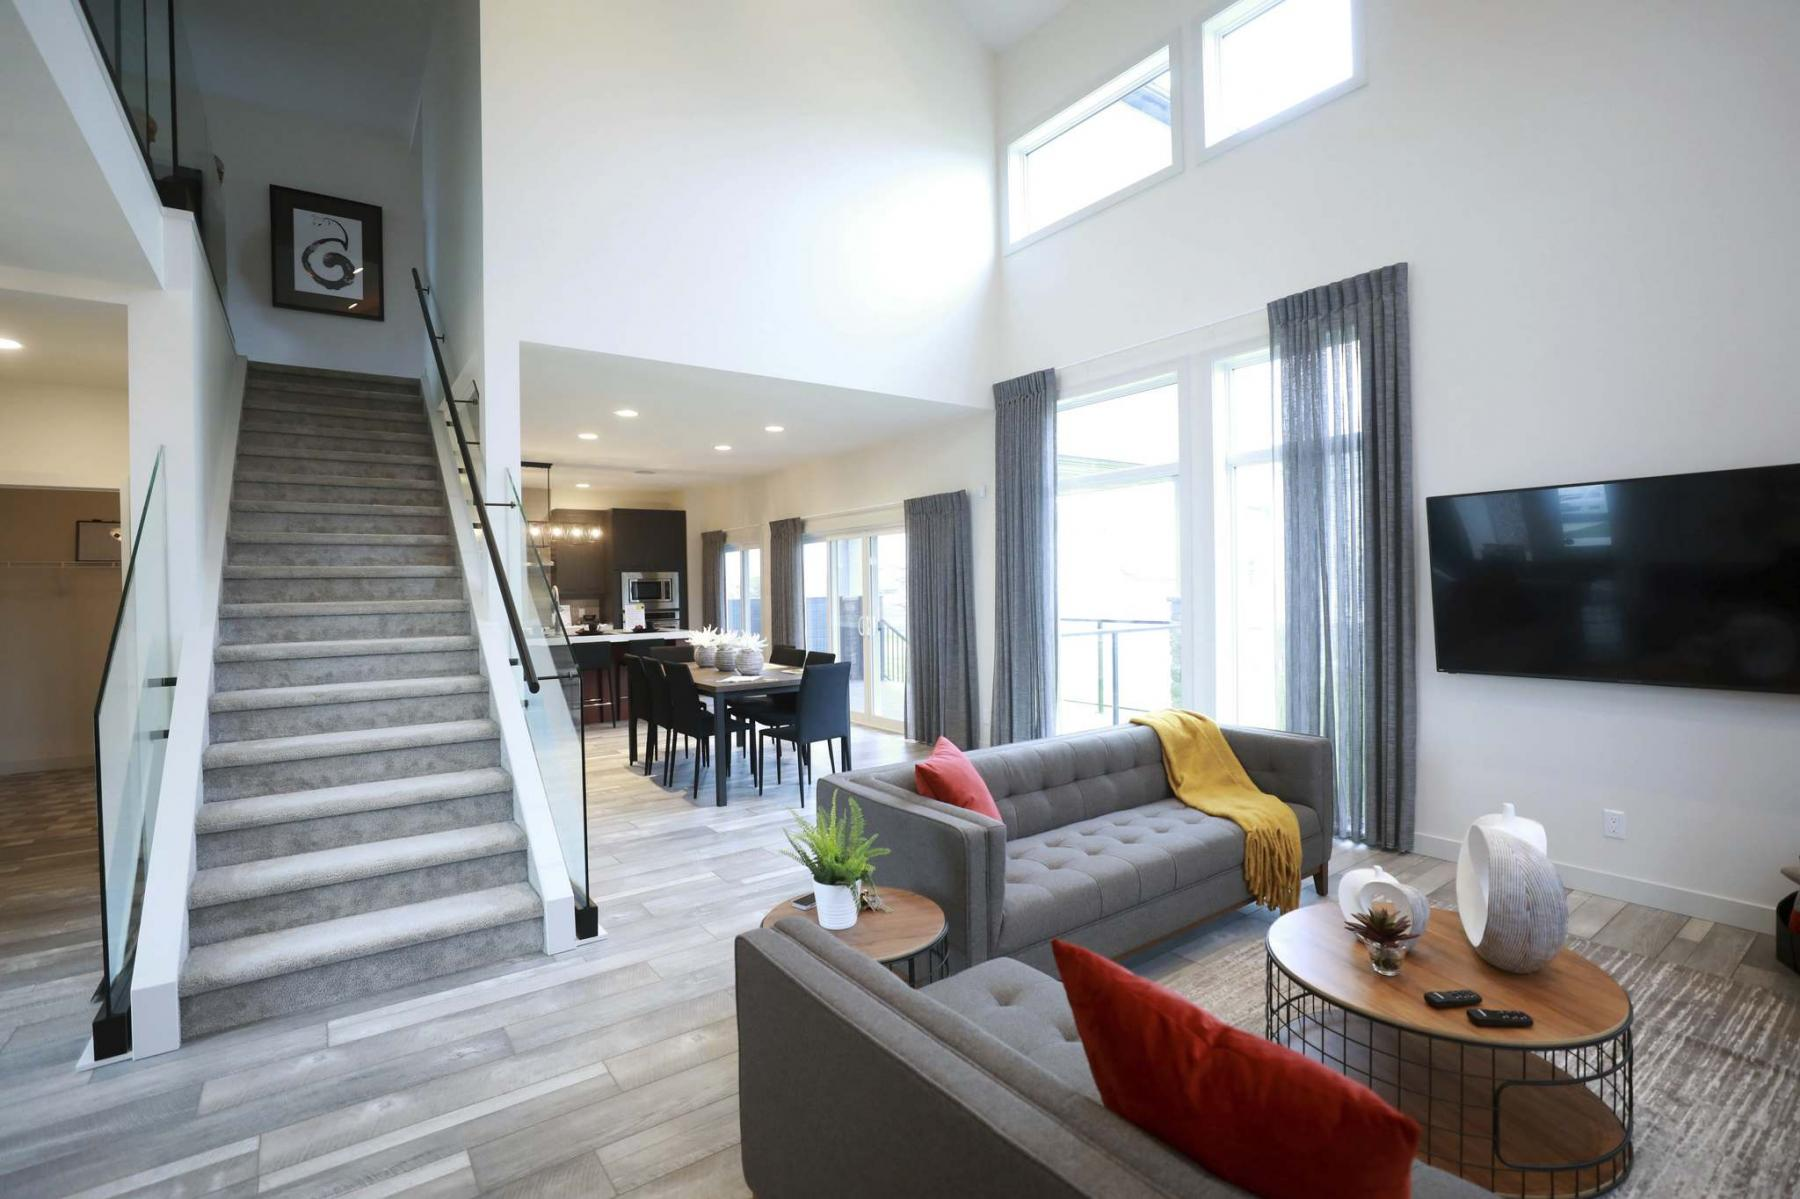 <p>RUTH BONNEVILLE / WINNIPEG FREE PRESS FILES</p><p>The Parade of Homes is an excellent opportunity to discover all that&rsquo;s new in home building design and technology.</p>